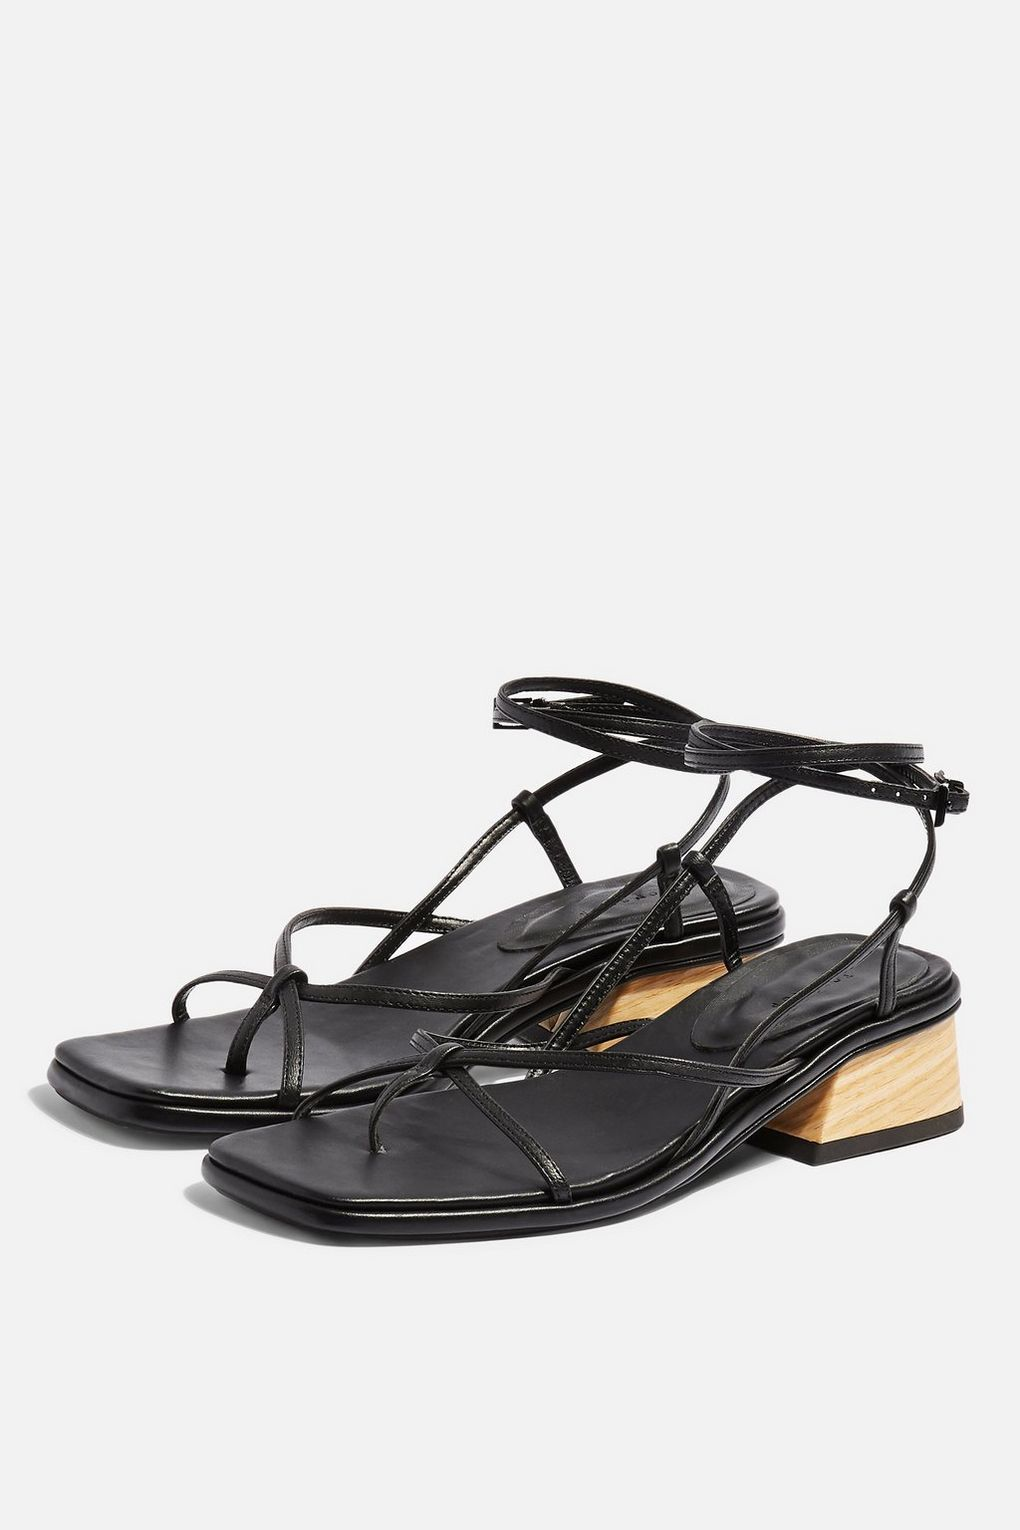 767a90c0819 Strappy sandals @Topshop Strappy Sandals, Topshop, Leather, Black, Shoes,  Fashion